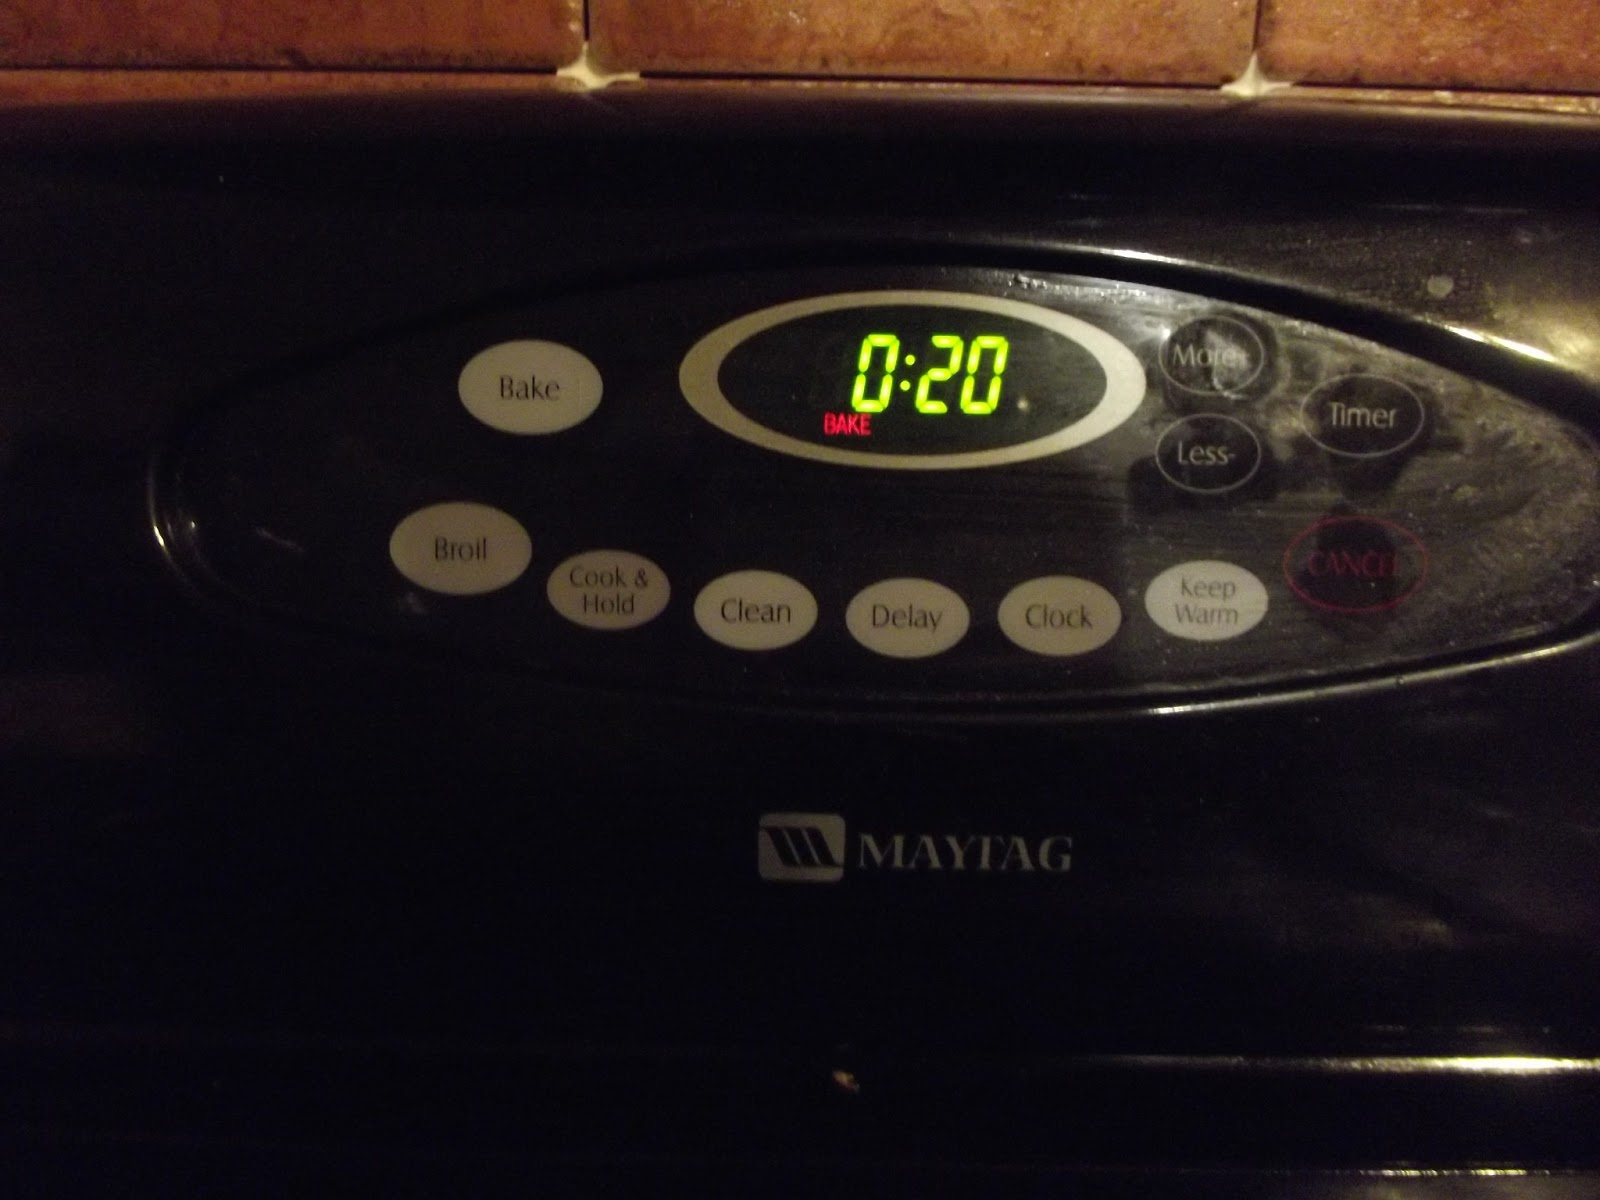 bake in the oven and make the entire home smell like burning plastic #AAC209